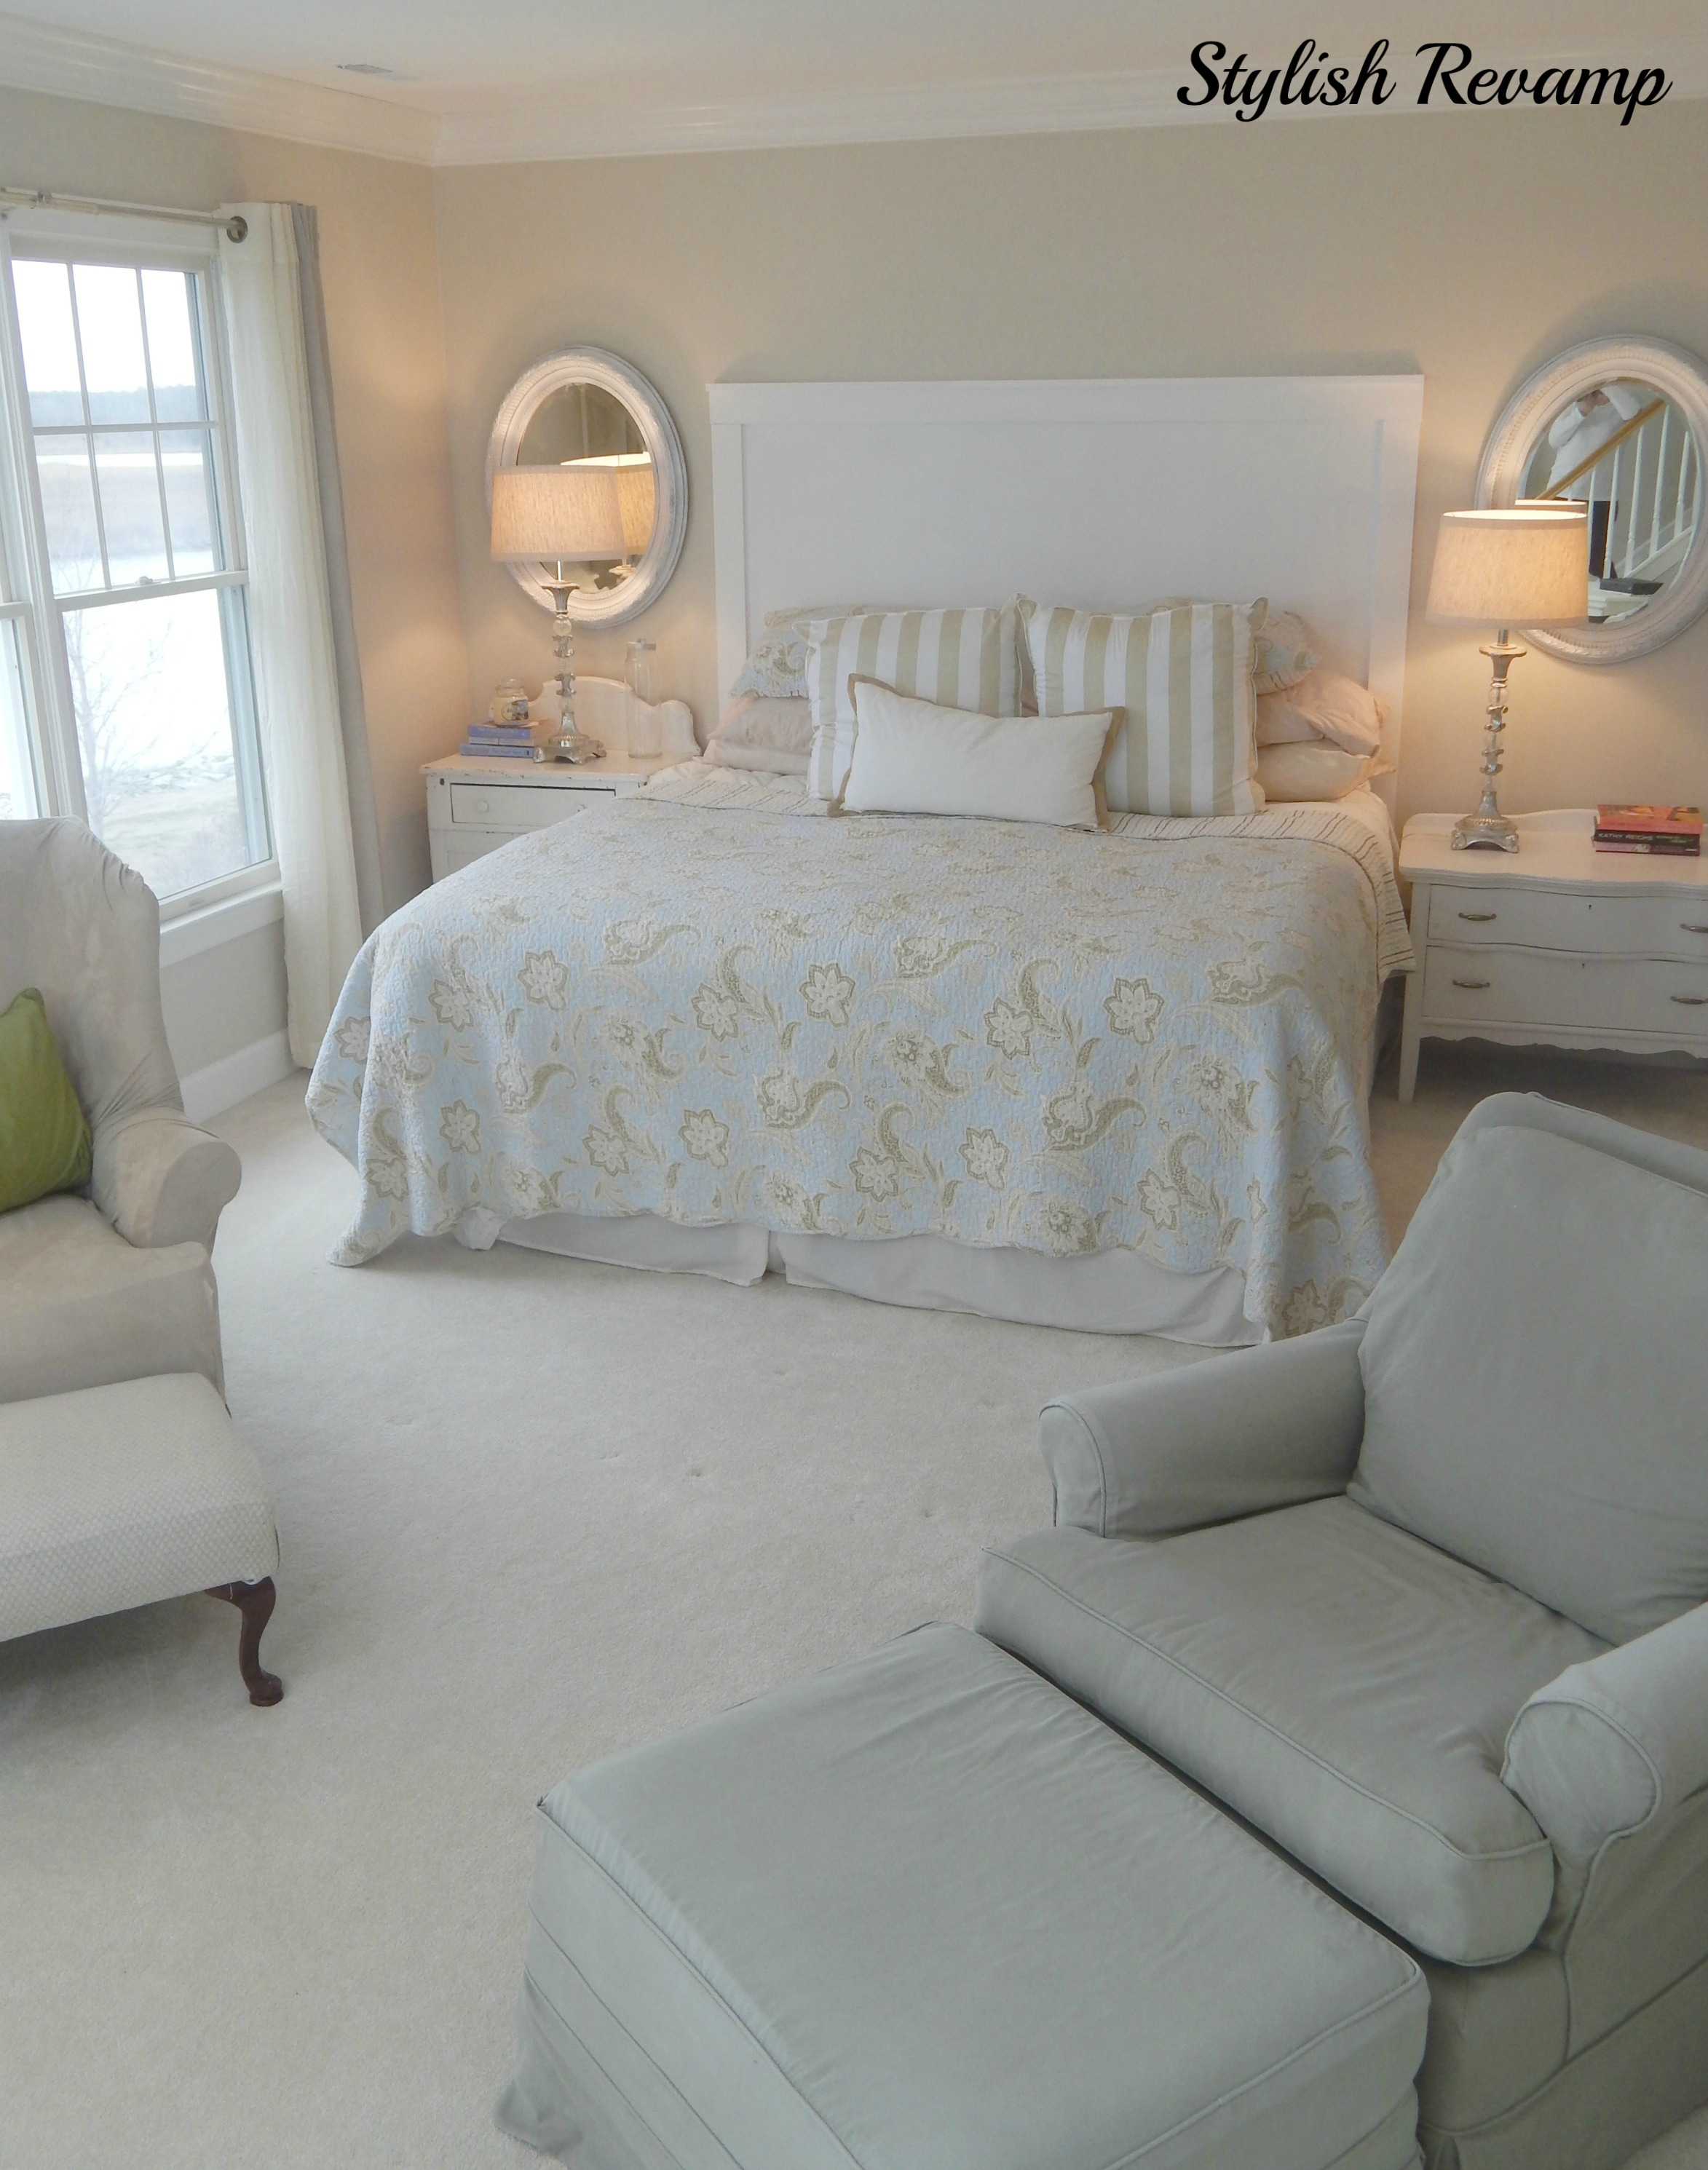 Home Tour On The Island Master Bedroom Stylish Revamp